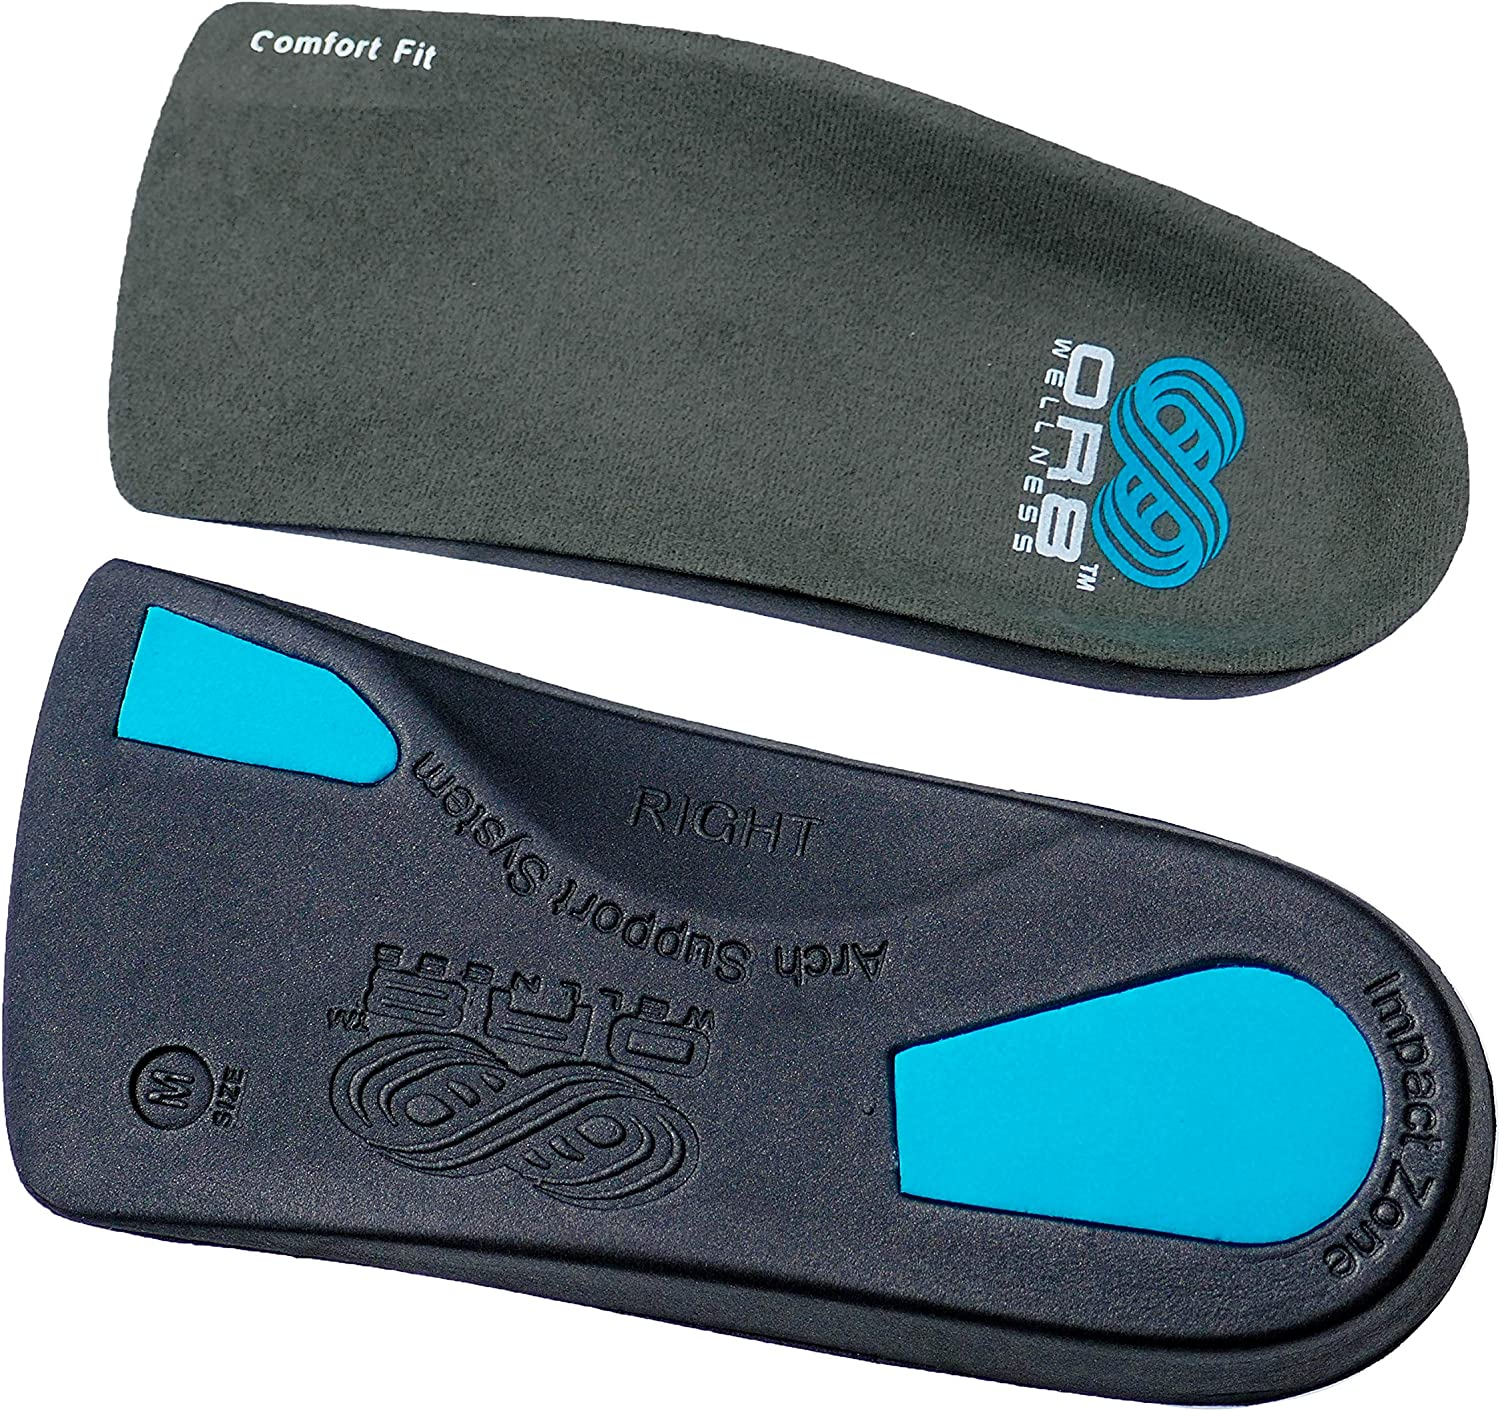 High Performance Features EXTRA BALL OF FOOT IMPACT PAD. Flat Feet /& Plantar Fasciitis Arch Support Weak /& Fallen Arches Orthotic /¾ Insoles Comfort Fit